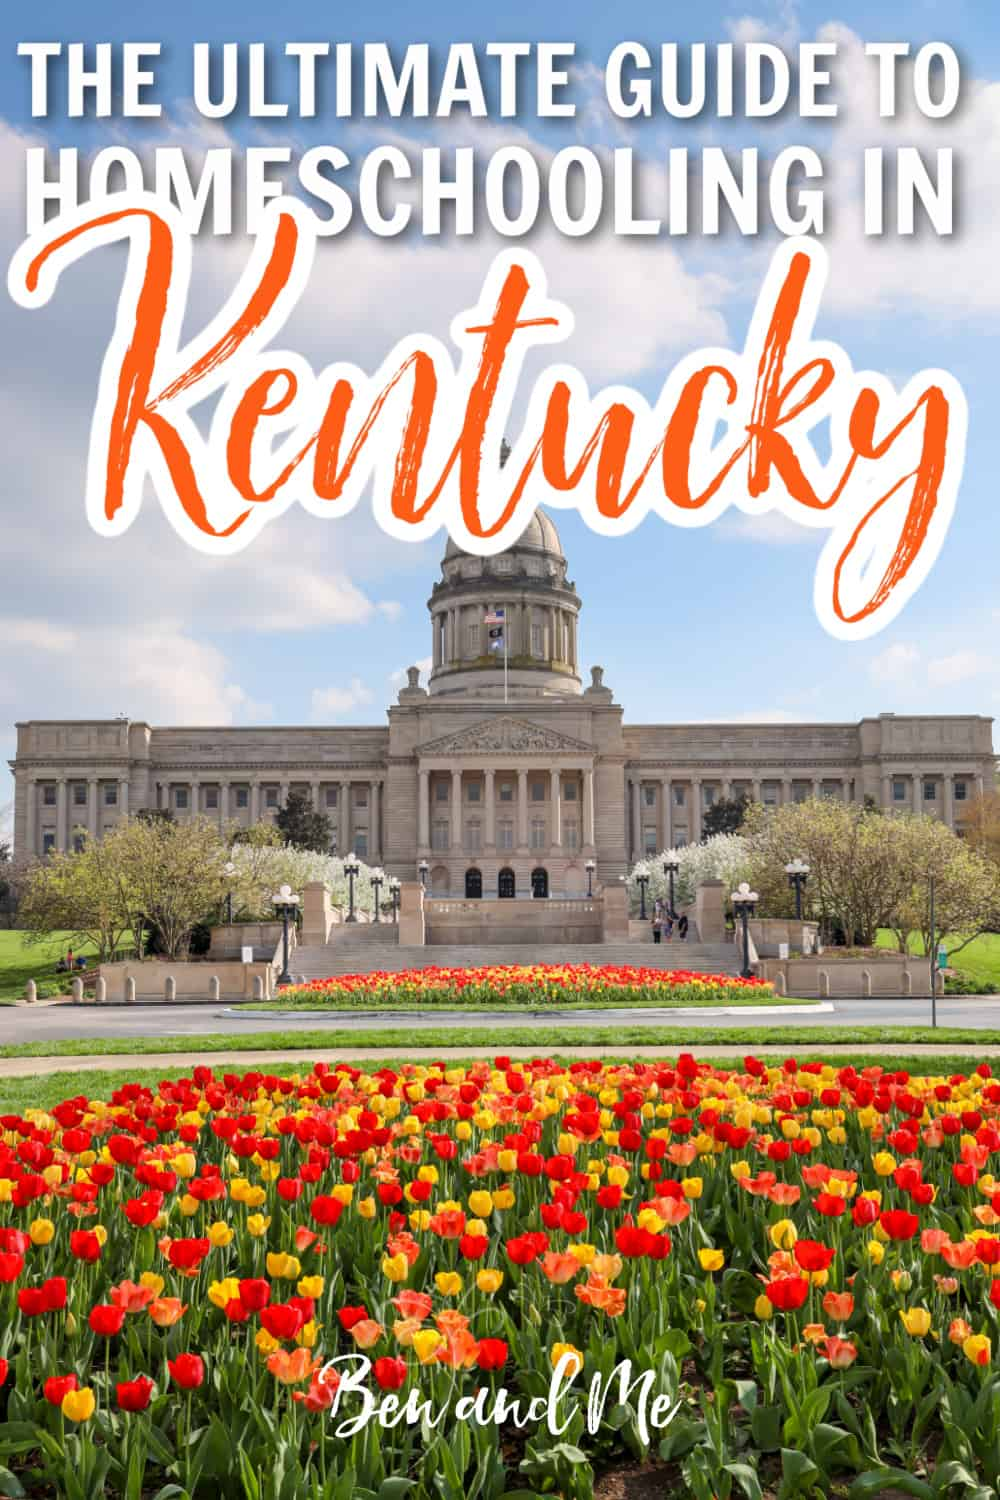 guide to homeschooling in Kentucky